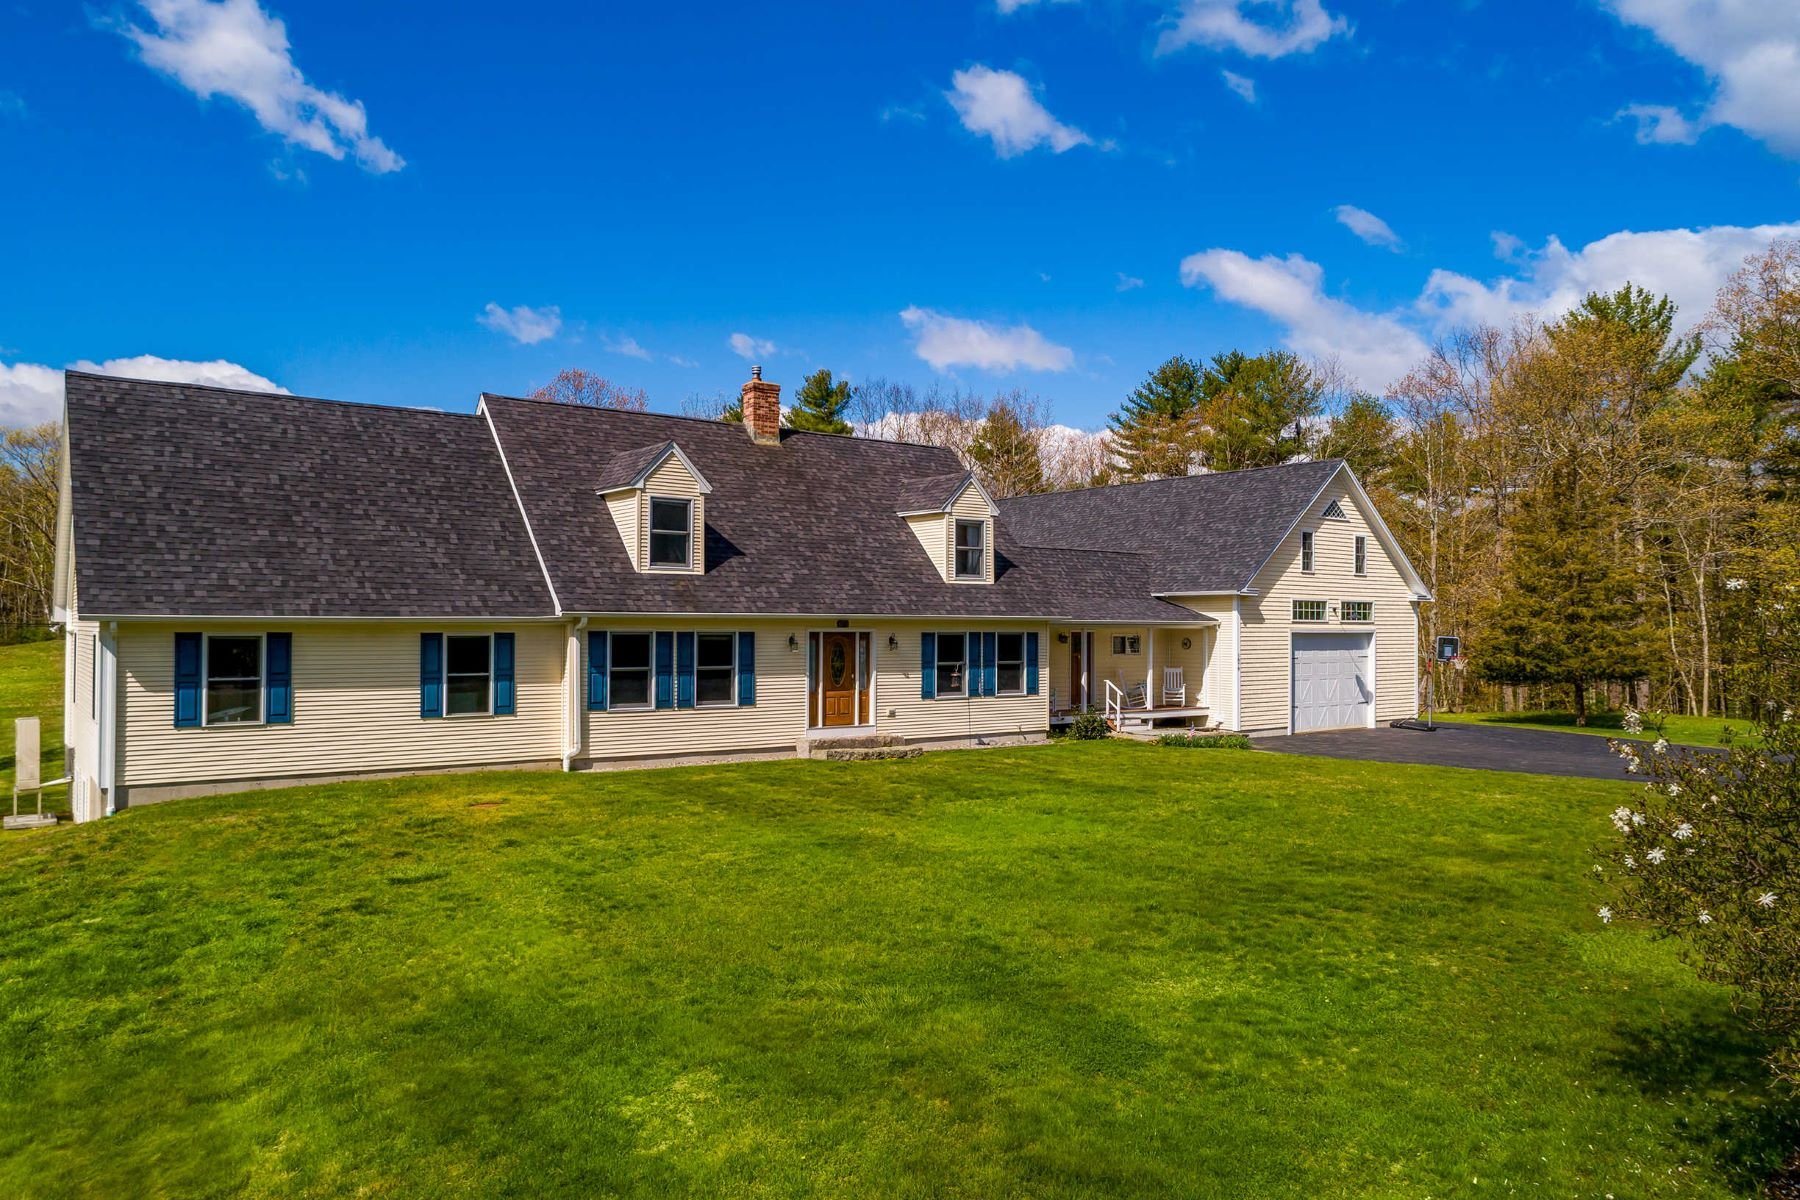 Single Family Homes for Active at Expanded Cape on Picturesque Country-Like Setting 1878 Tatnic Road Wells, Maine 04090 United States